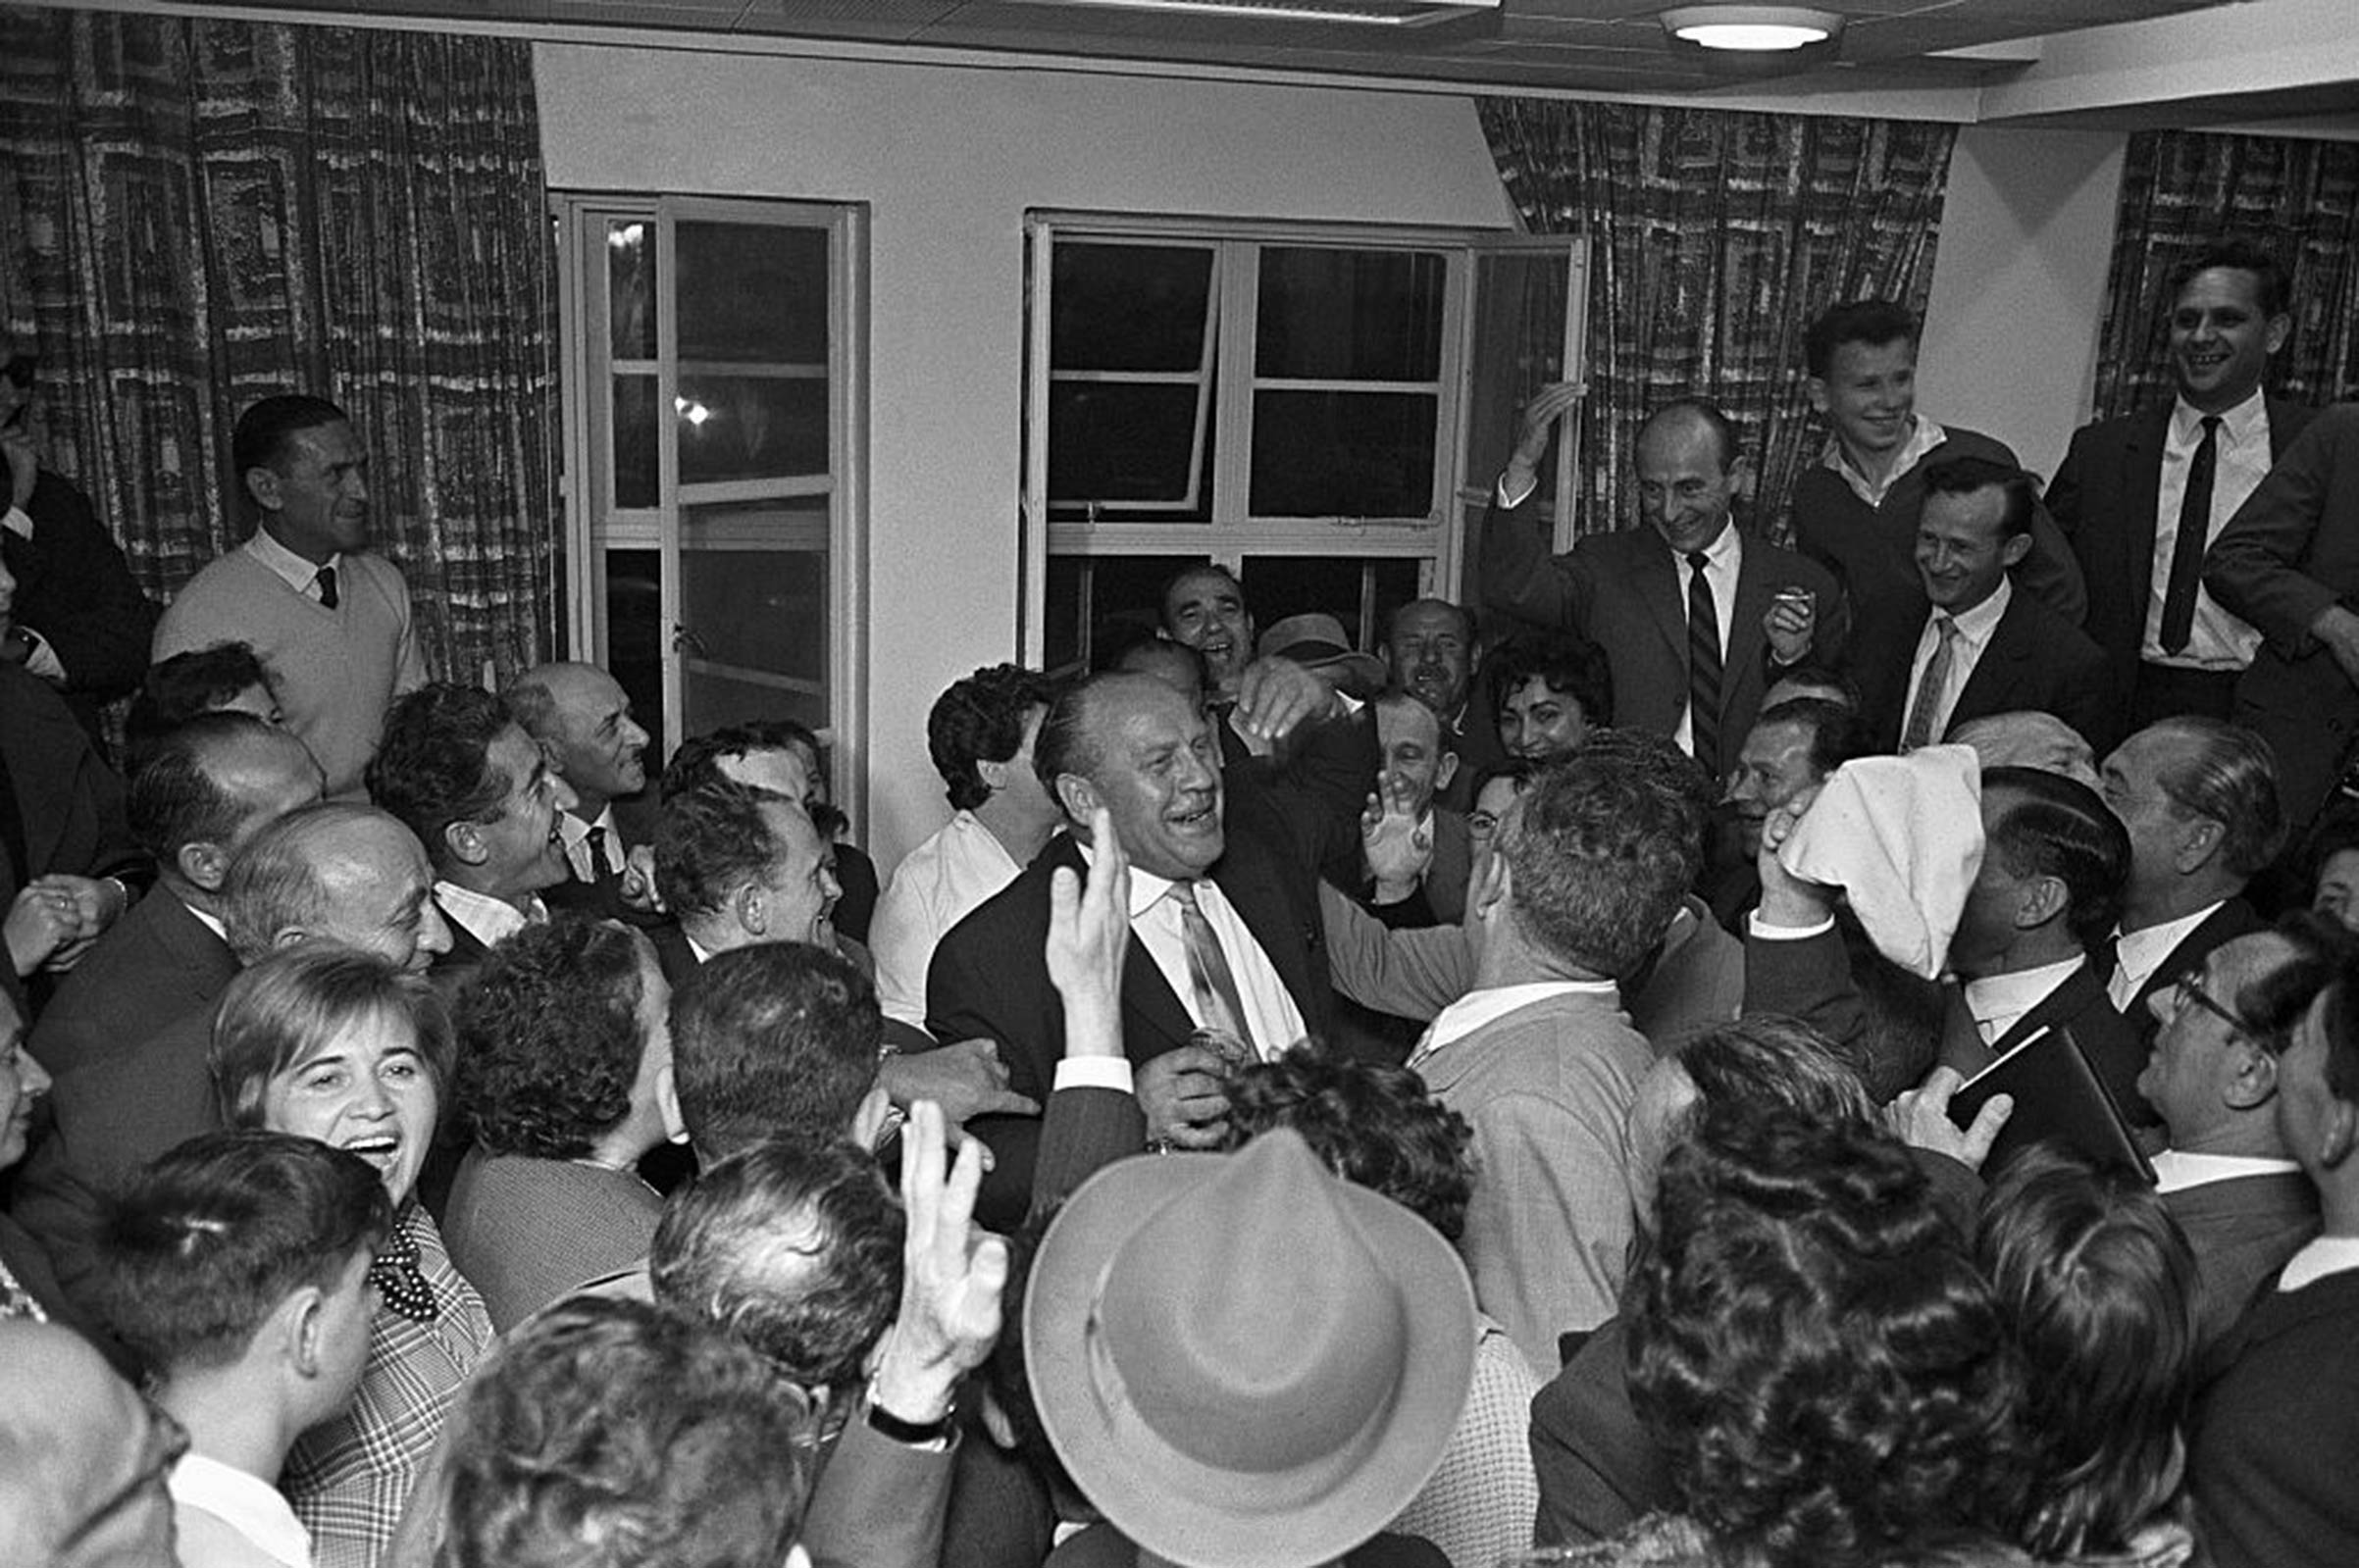 Oskar Schindler (center) receives a hero's welcome from some of the Holocaust survivors he saved during a May 1962 visit to Tel Aviv, Israel.